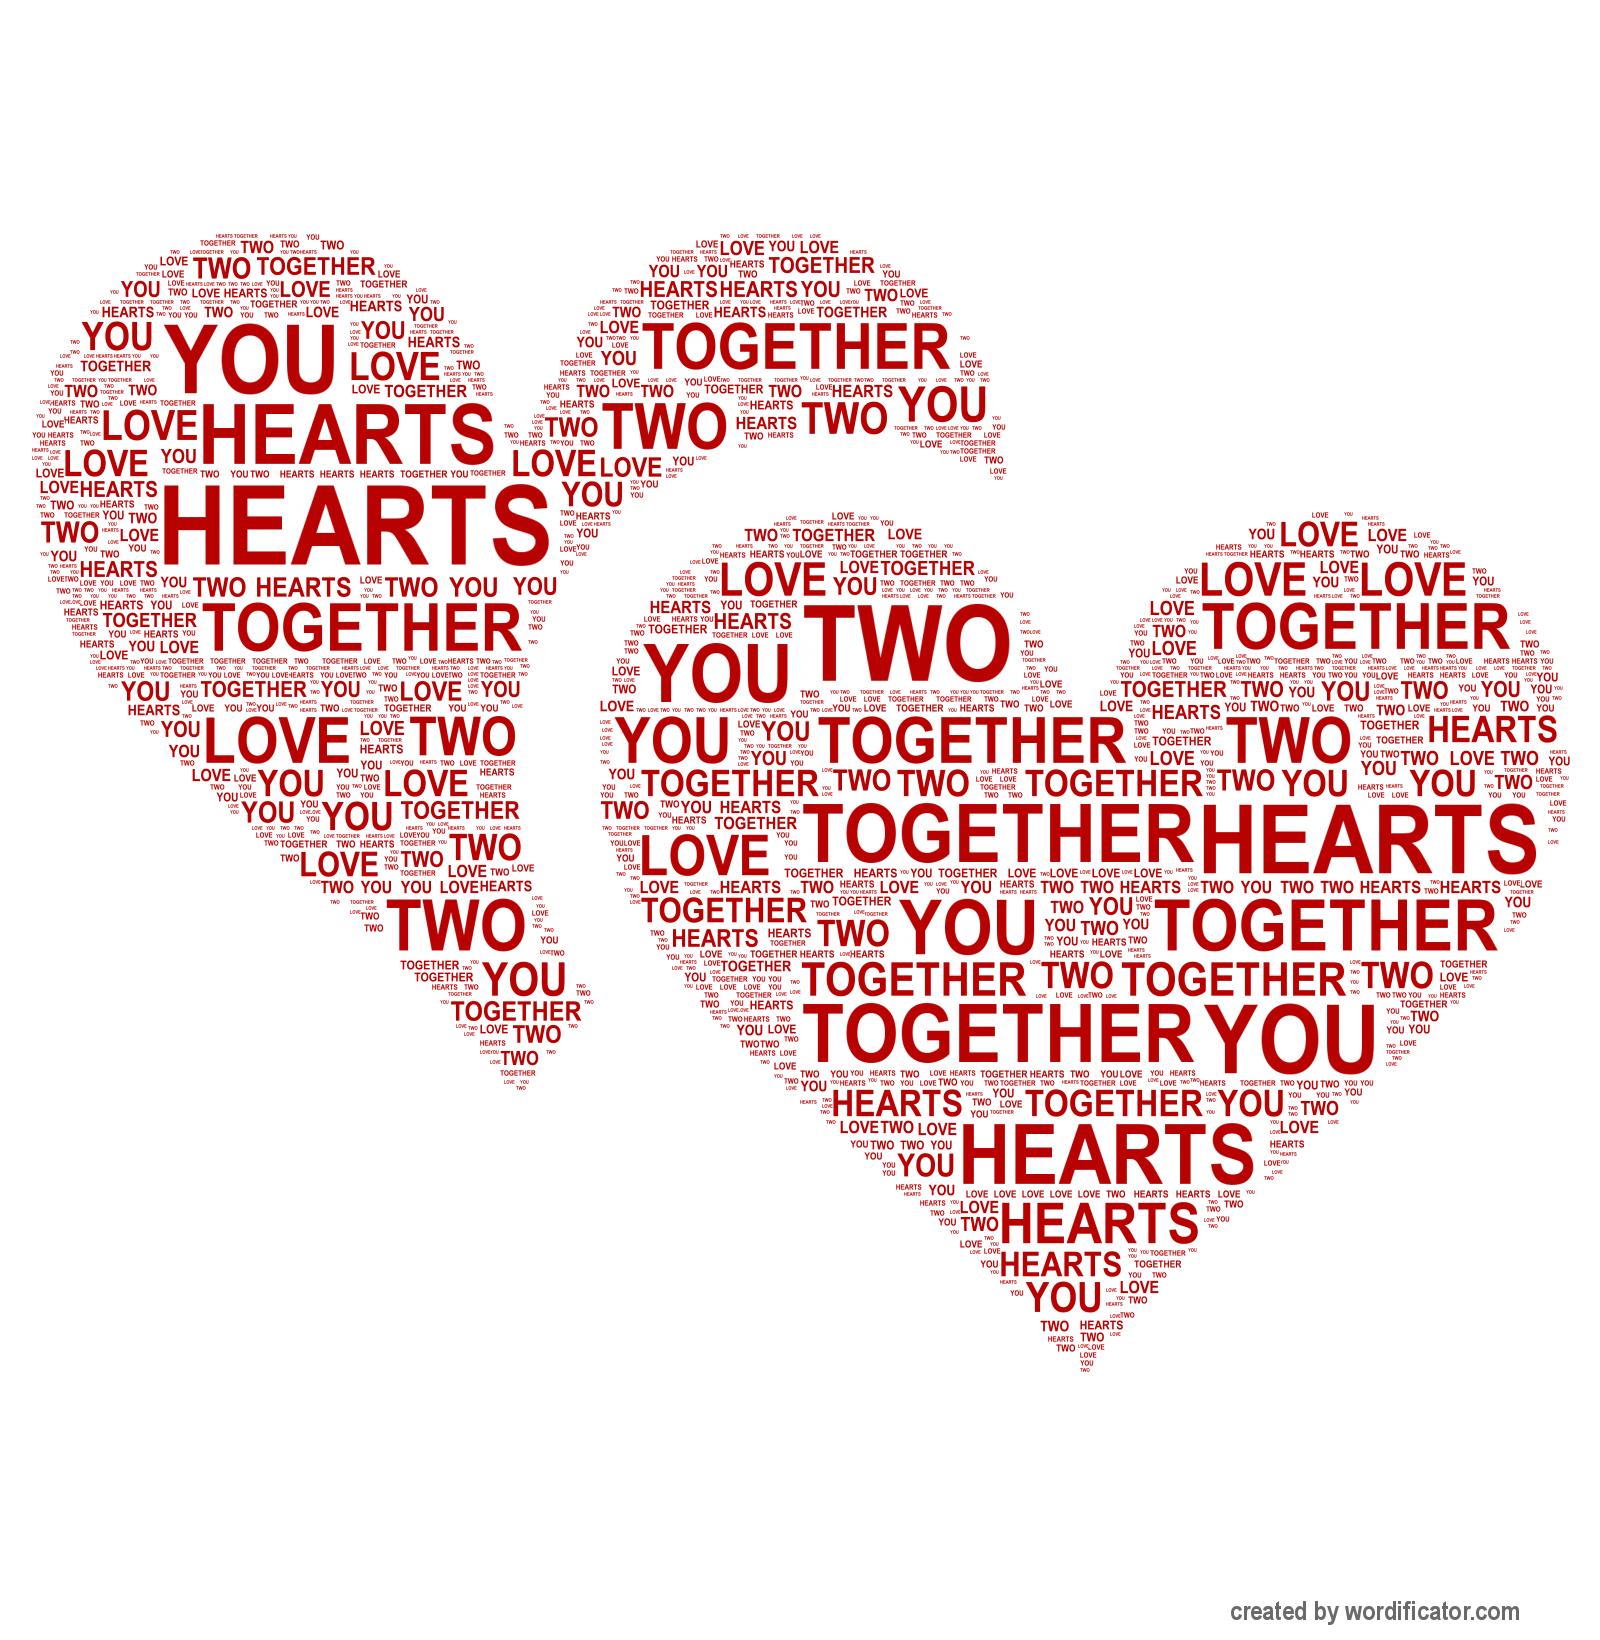 Two hearts in love #heart #love #wordificator #wordart ...